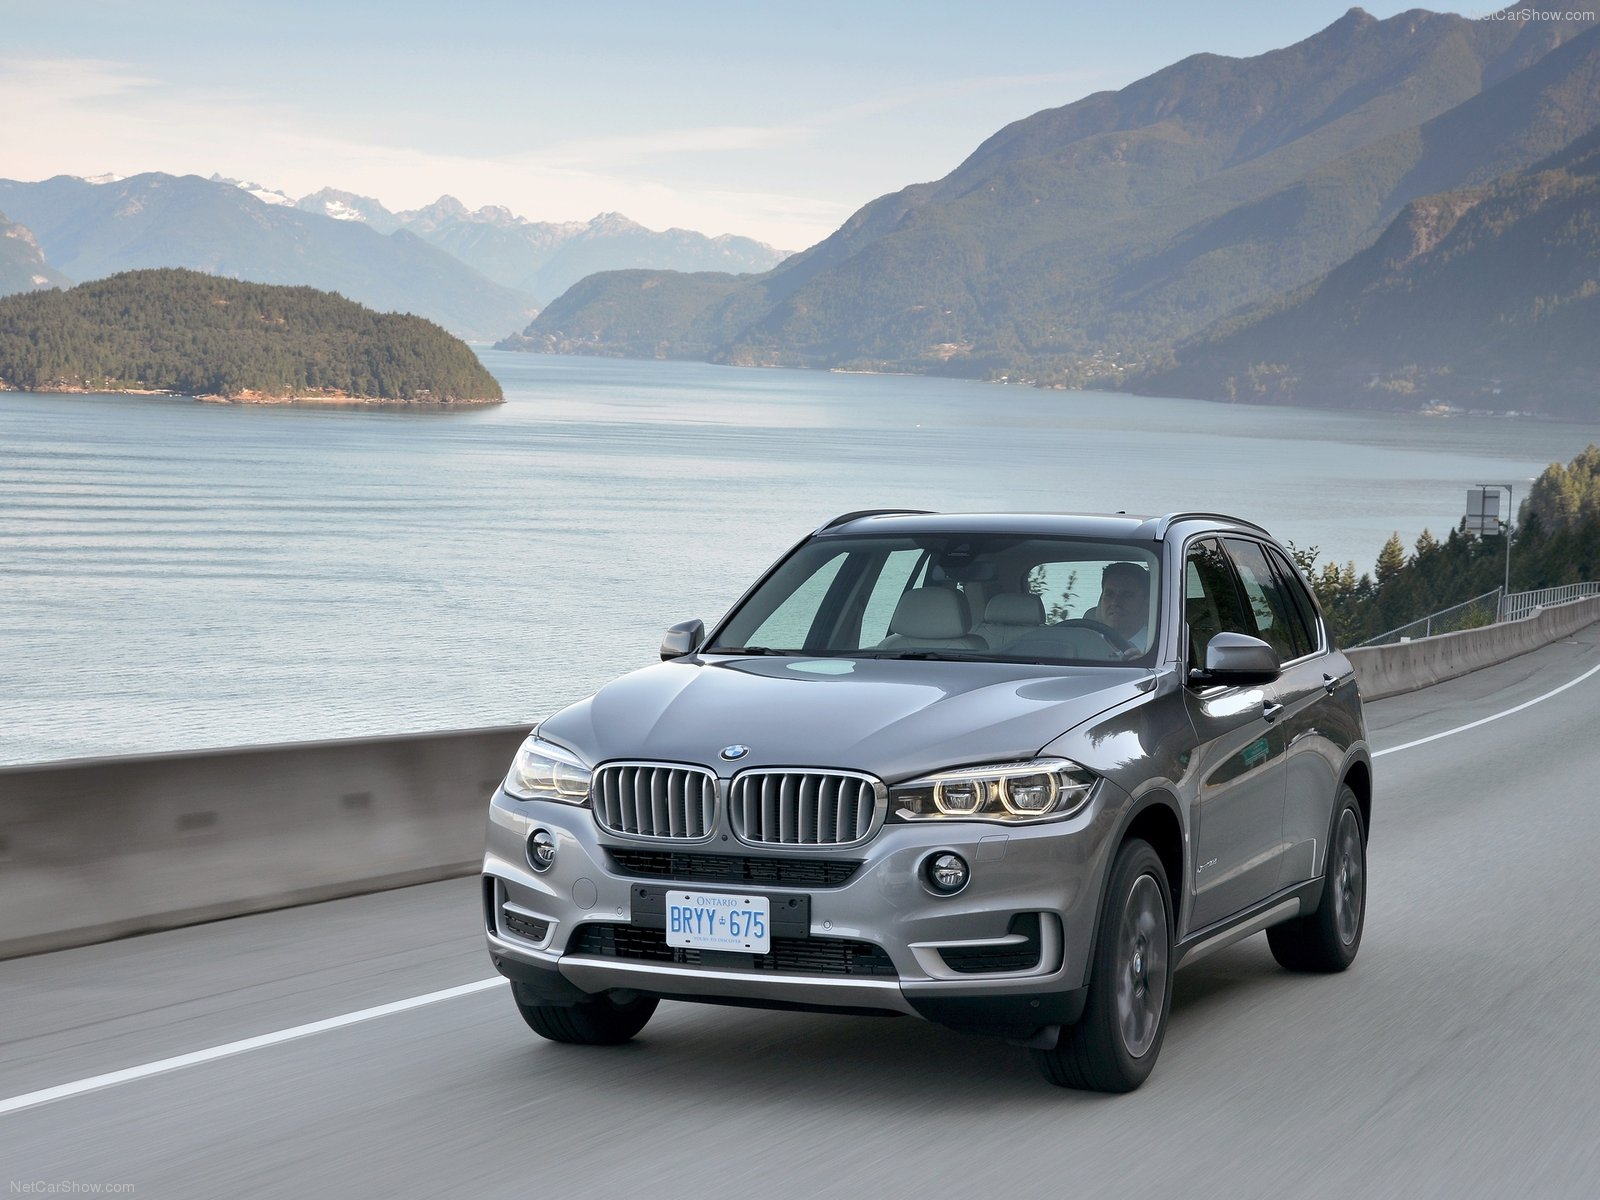 BMW X5 Crossover 2014